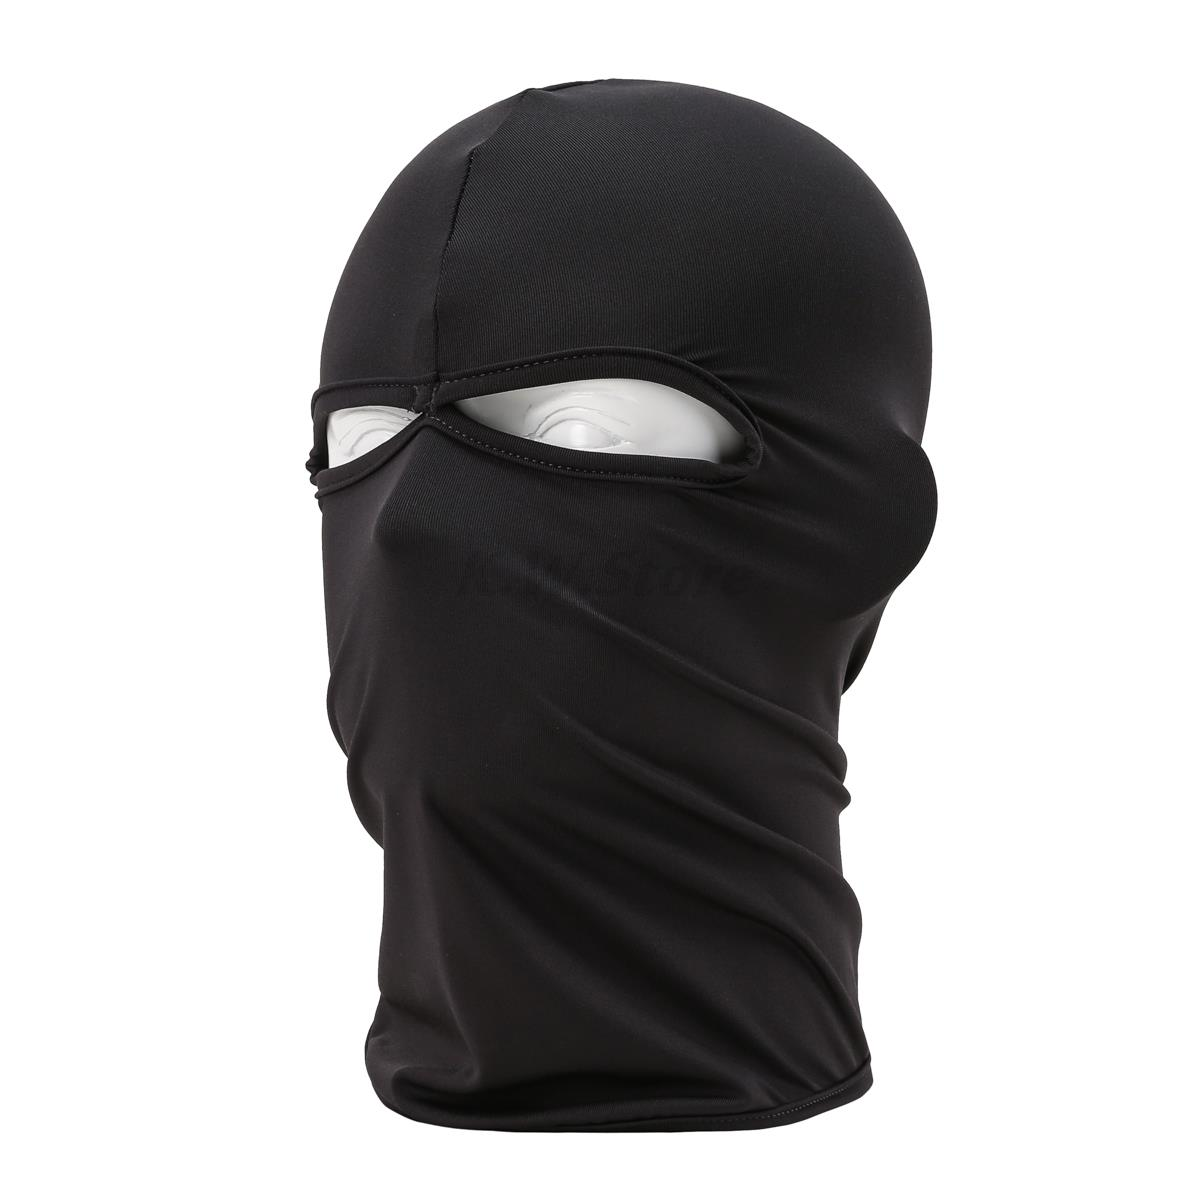 New Full Cover Face Mask Headwear Balaclava Bike Caps Moderate Cost Girl's Accessories